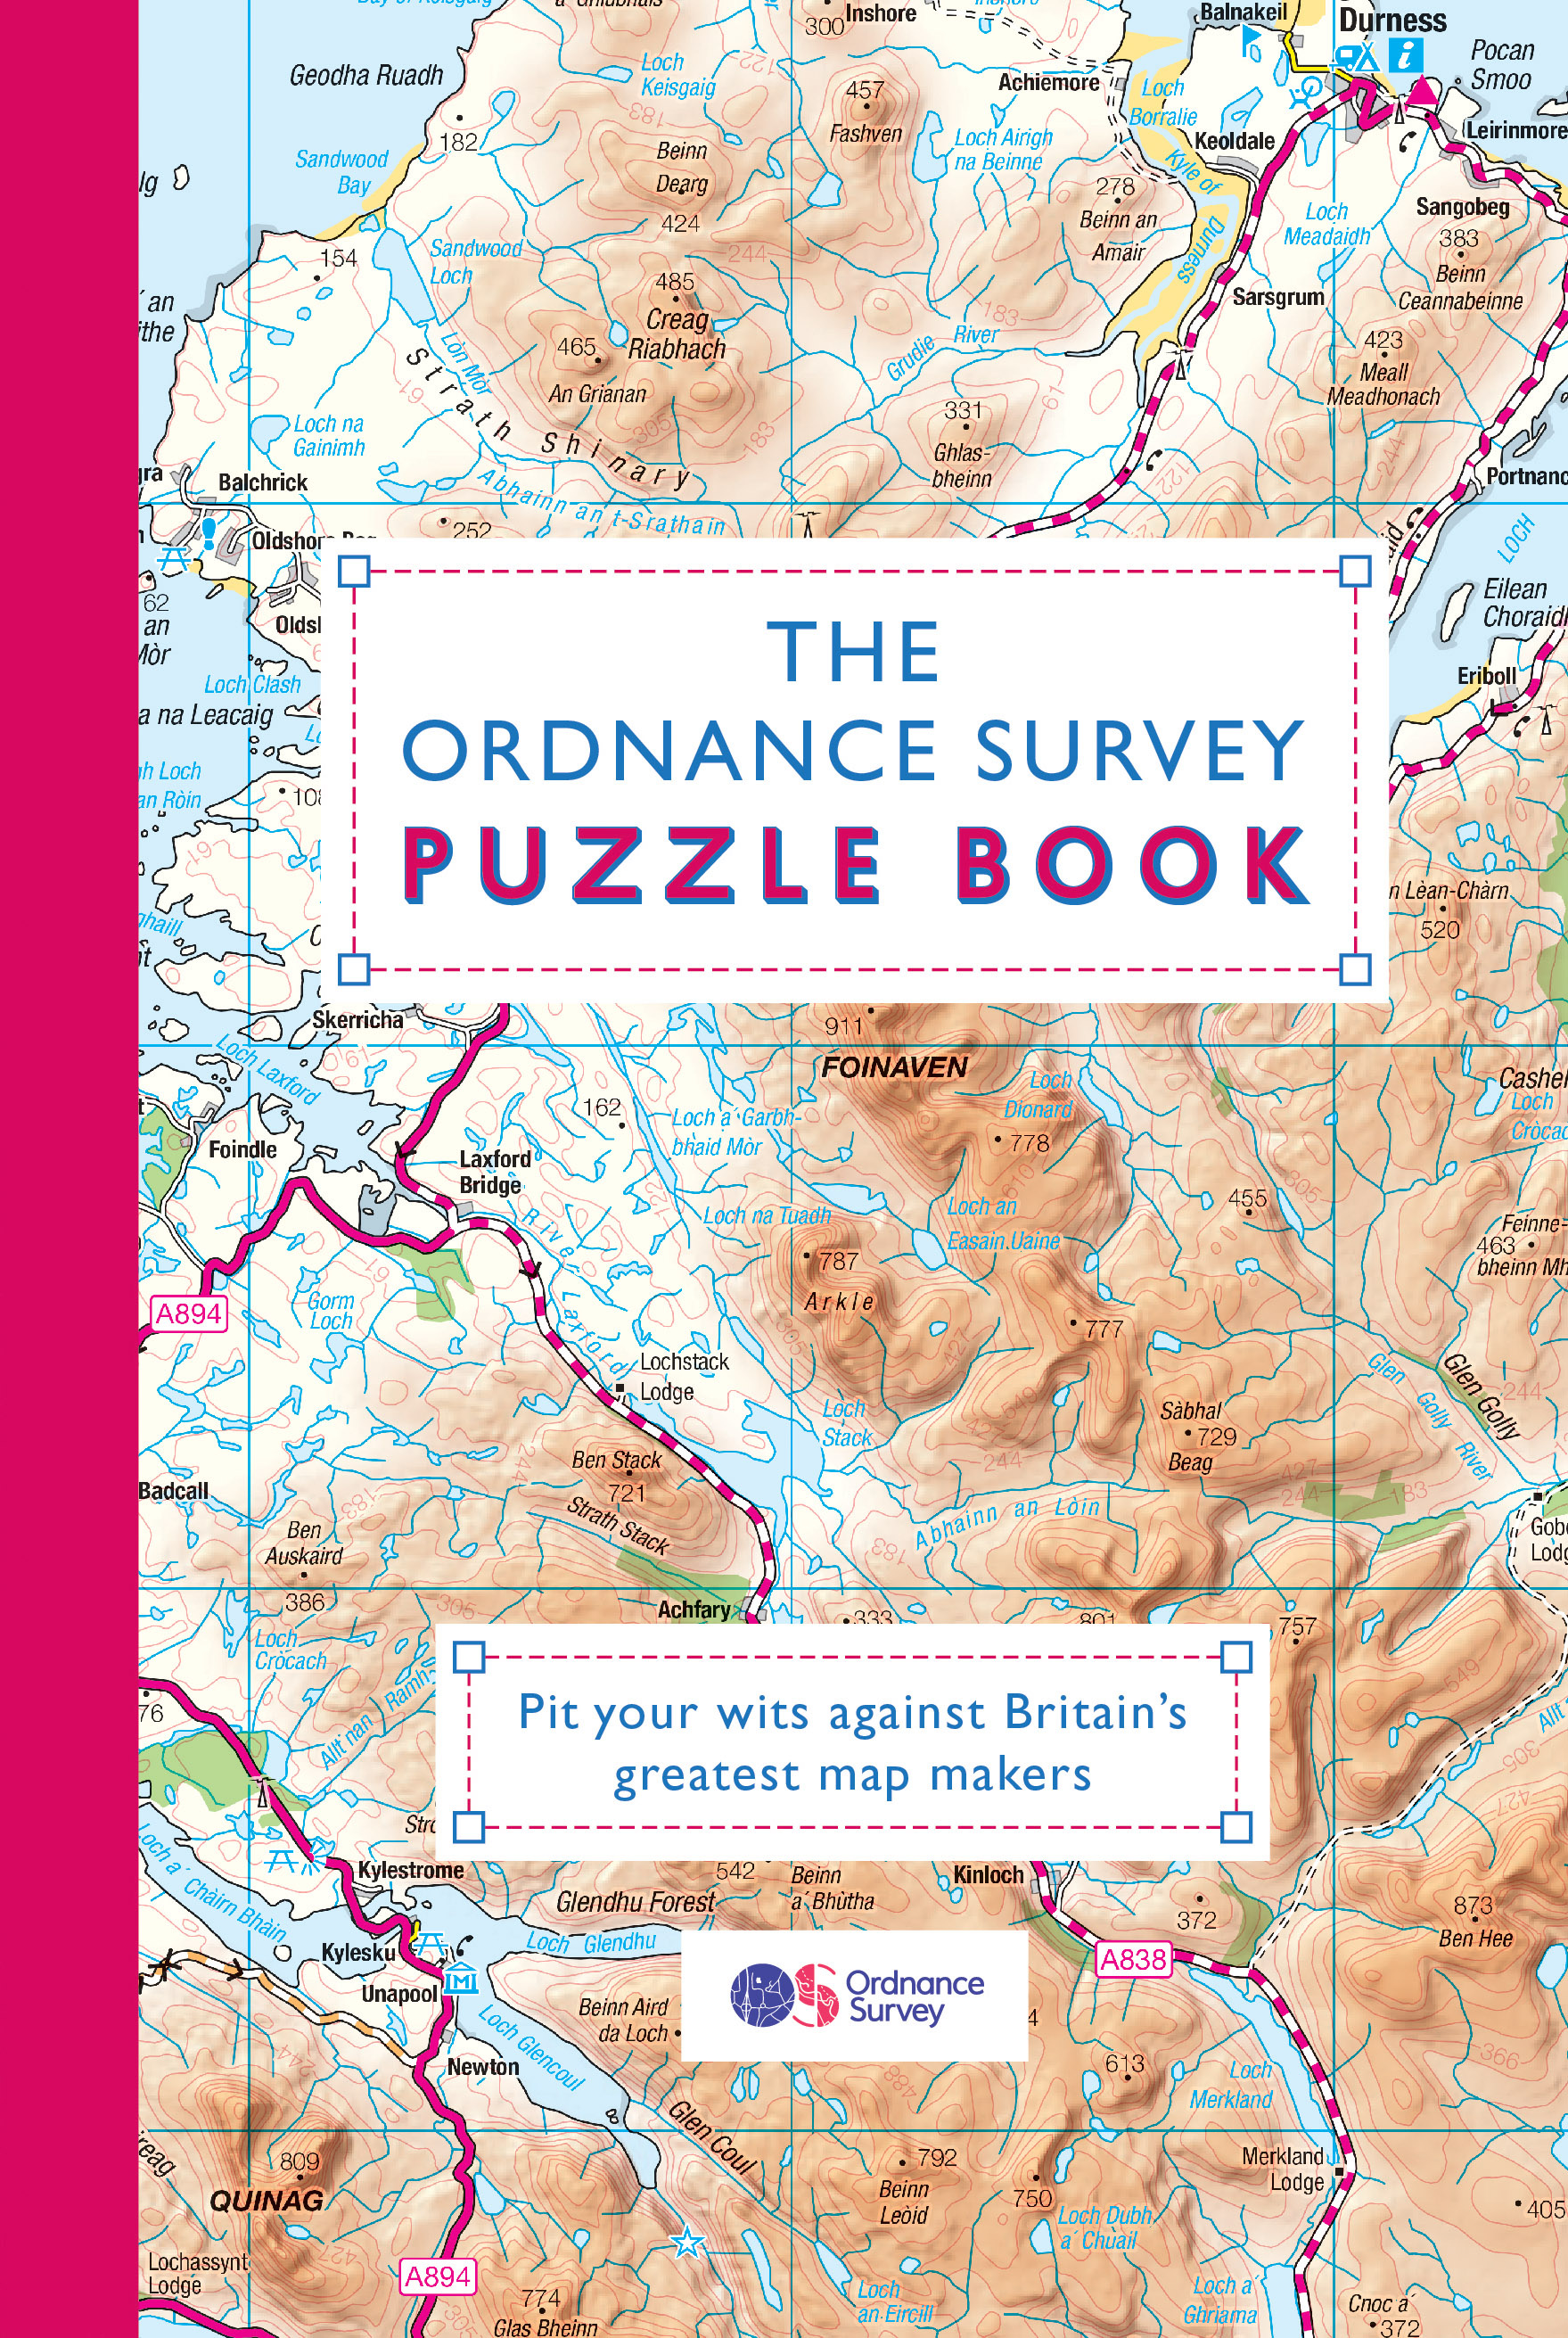 The Ordnance Survey Puzzle BookPit your wits against Britain's greatest map ma...